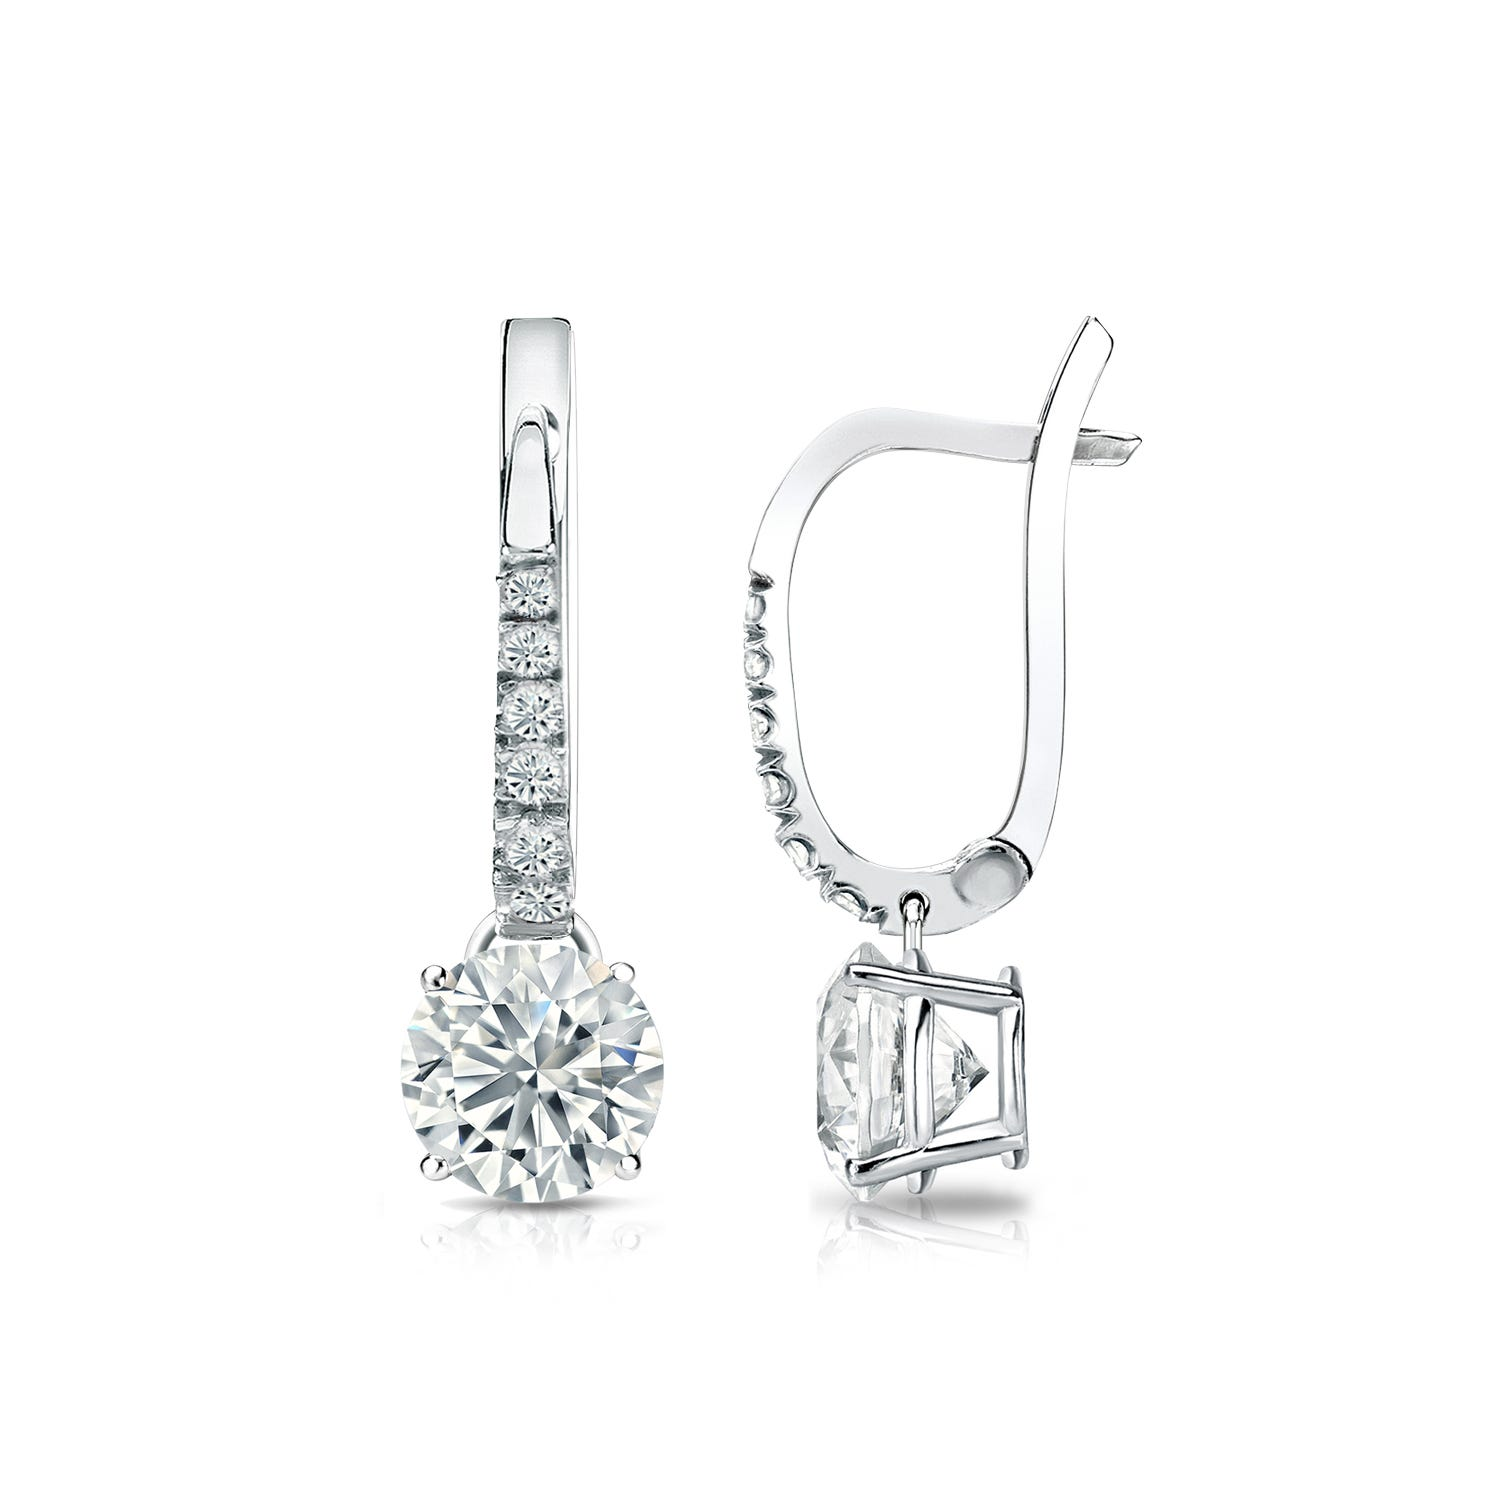 Diamond 1ctw. 4-Prong Round Drop Earrings in 14k White Gold I2 Clarity